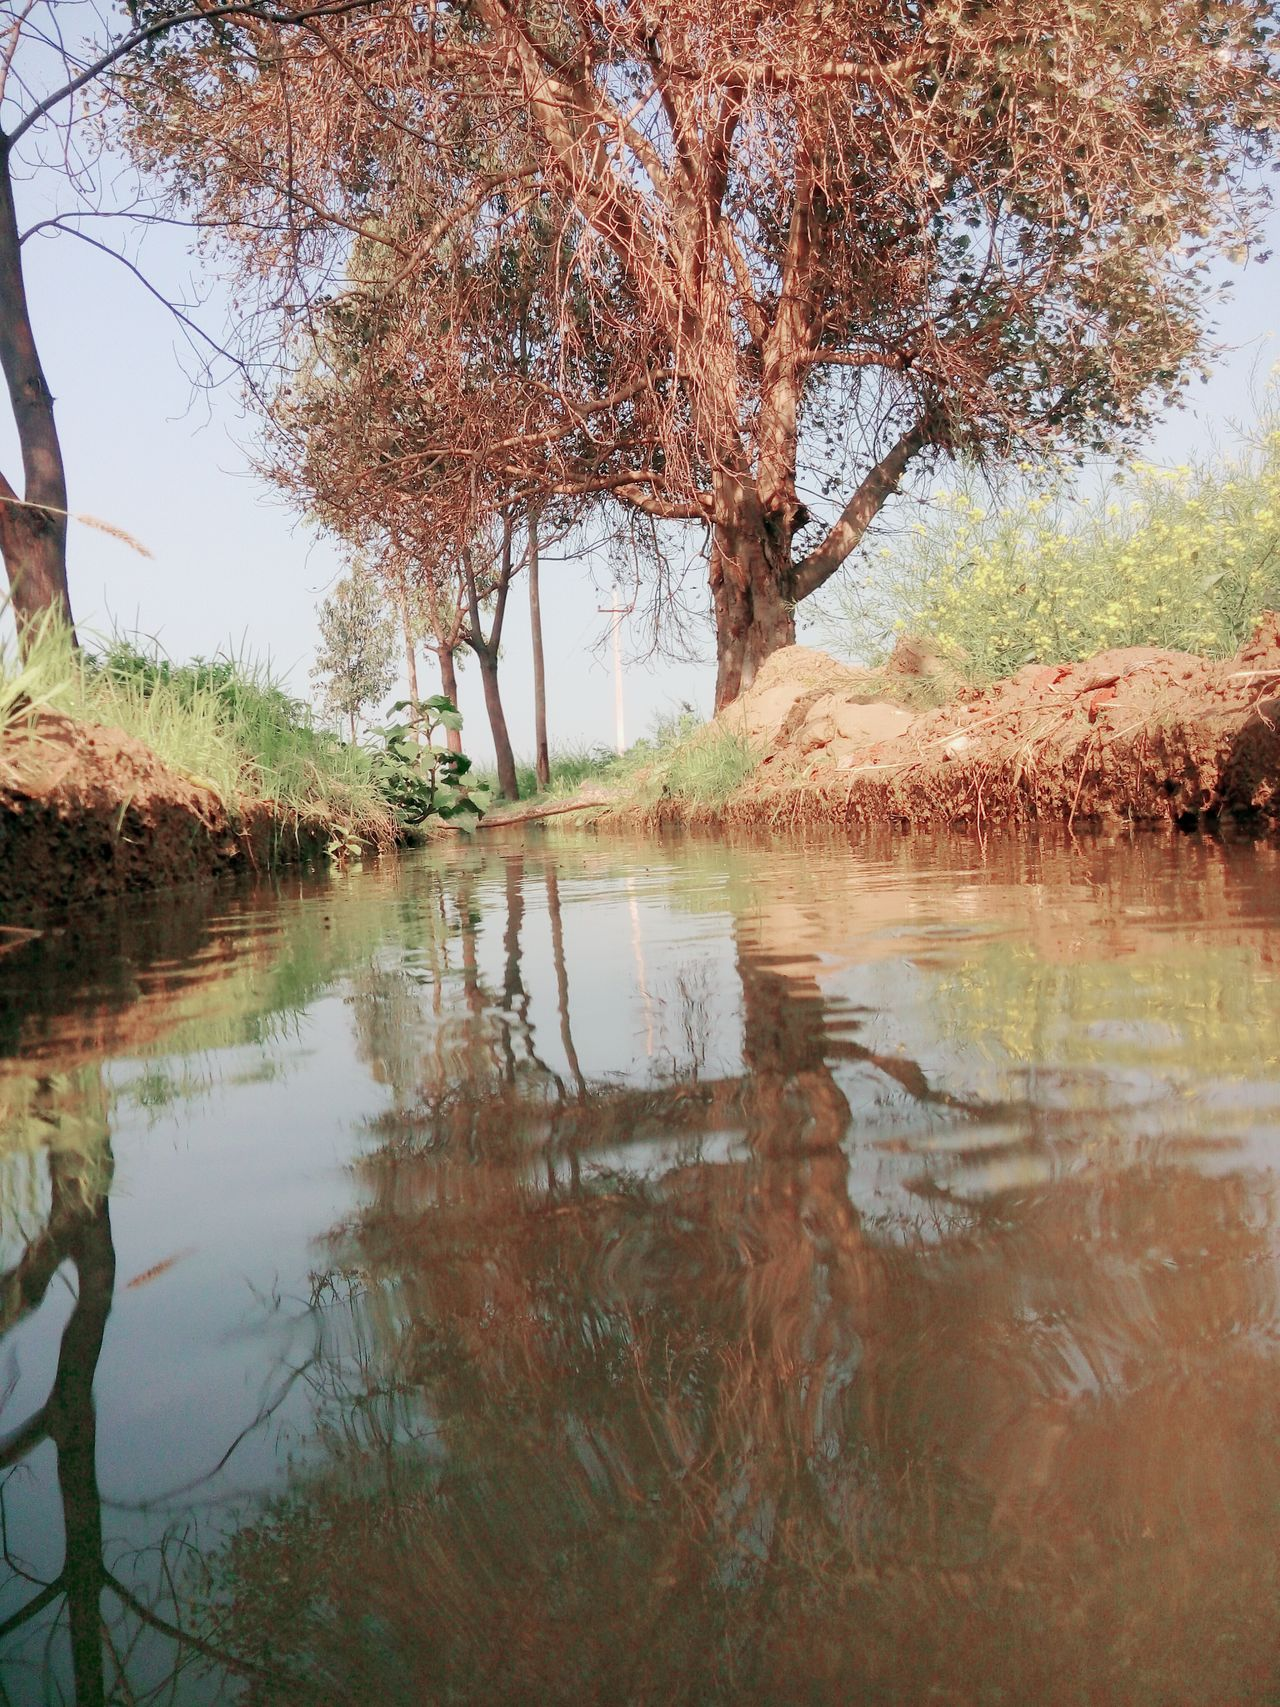 Peepal Tree Water Projection Farming Drain Local Photoshoot Water Reflections